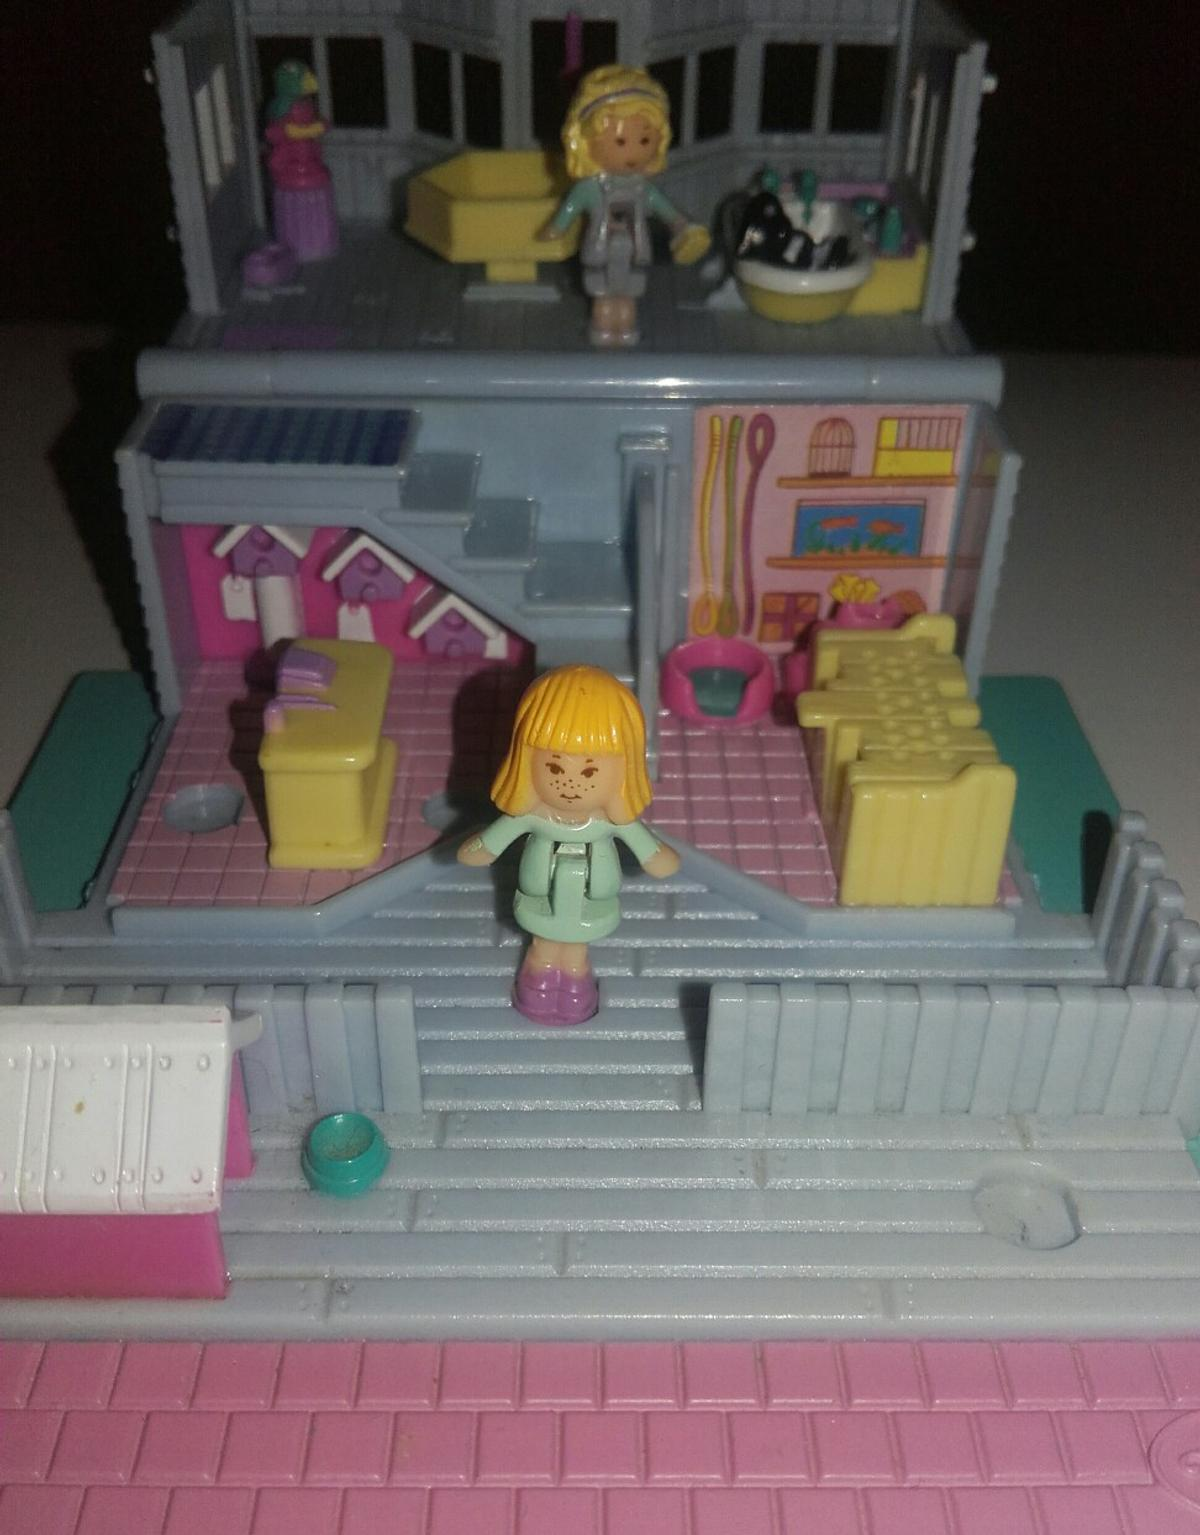 Polly Pockets For Sale: Vintage Polly Pocket Pet Shop In S9 Sheffield For £15.00